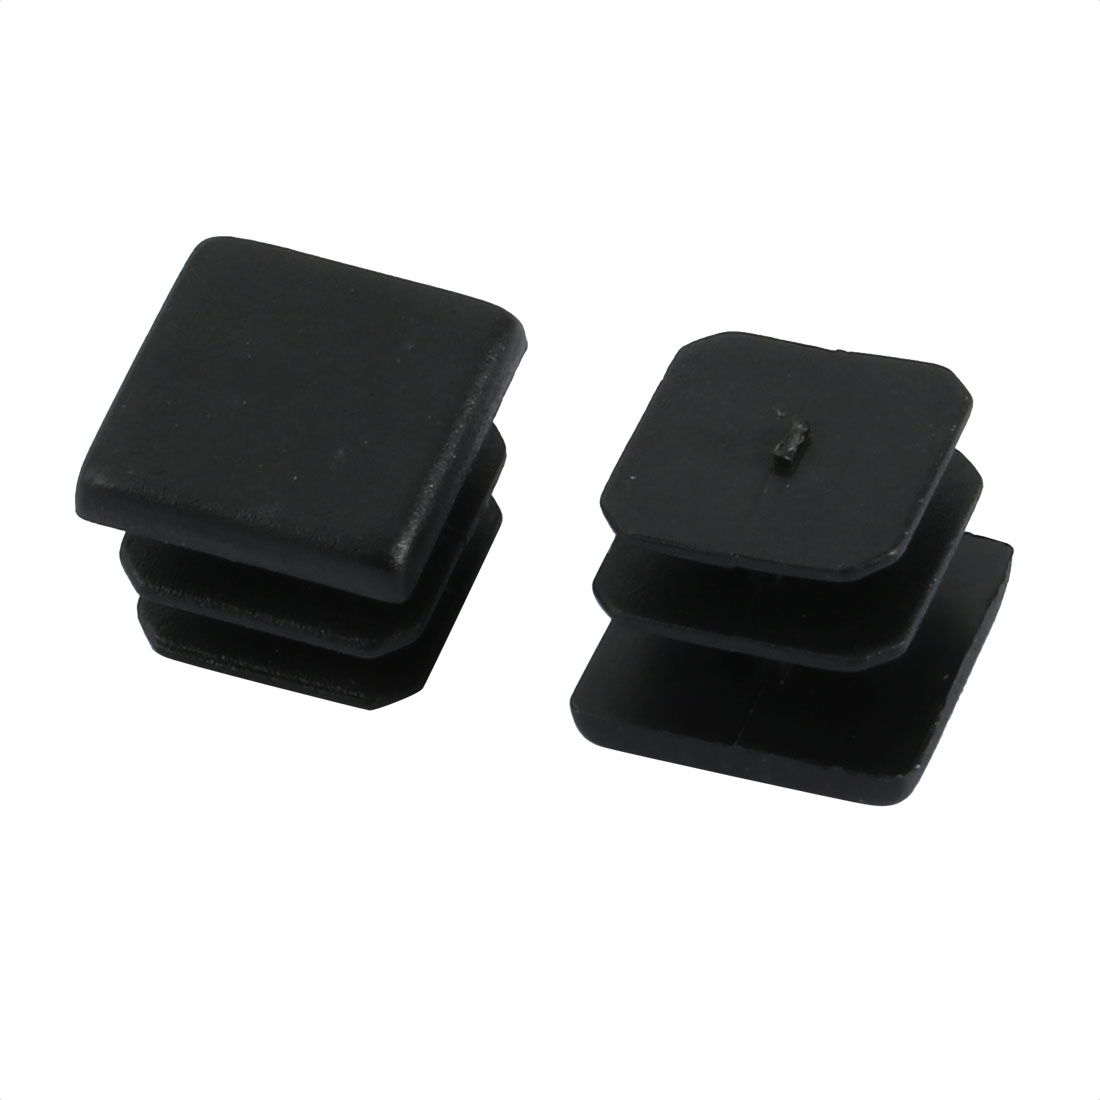 2pcs Furniture Legs Protector Plastic Square Tube Inserts Cap Black 13mm x 13mm